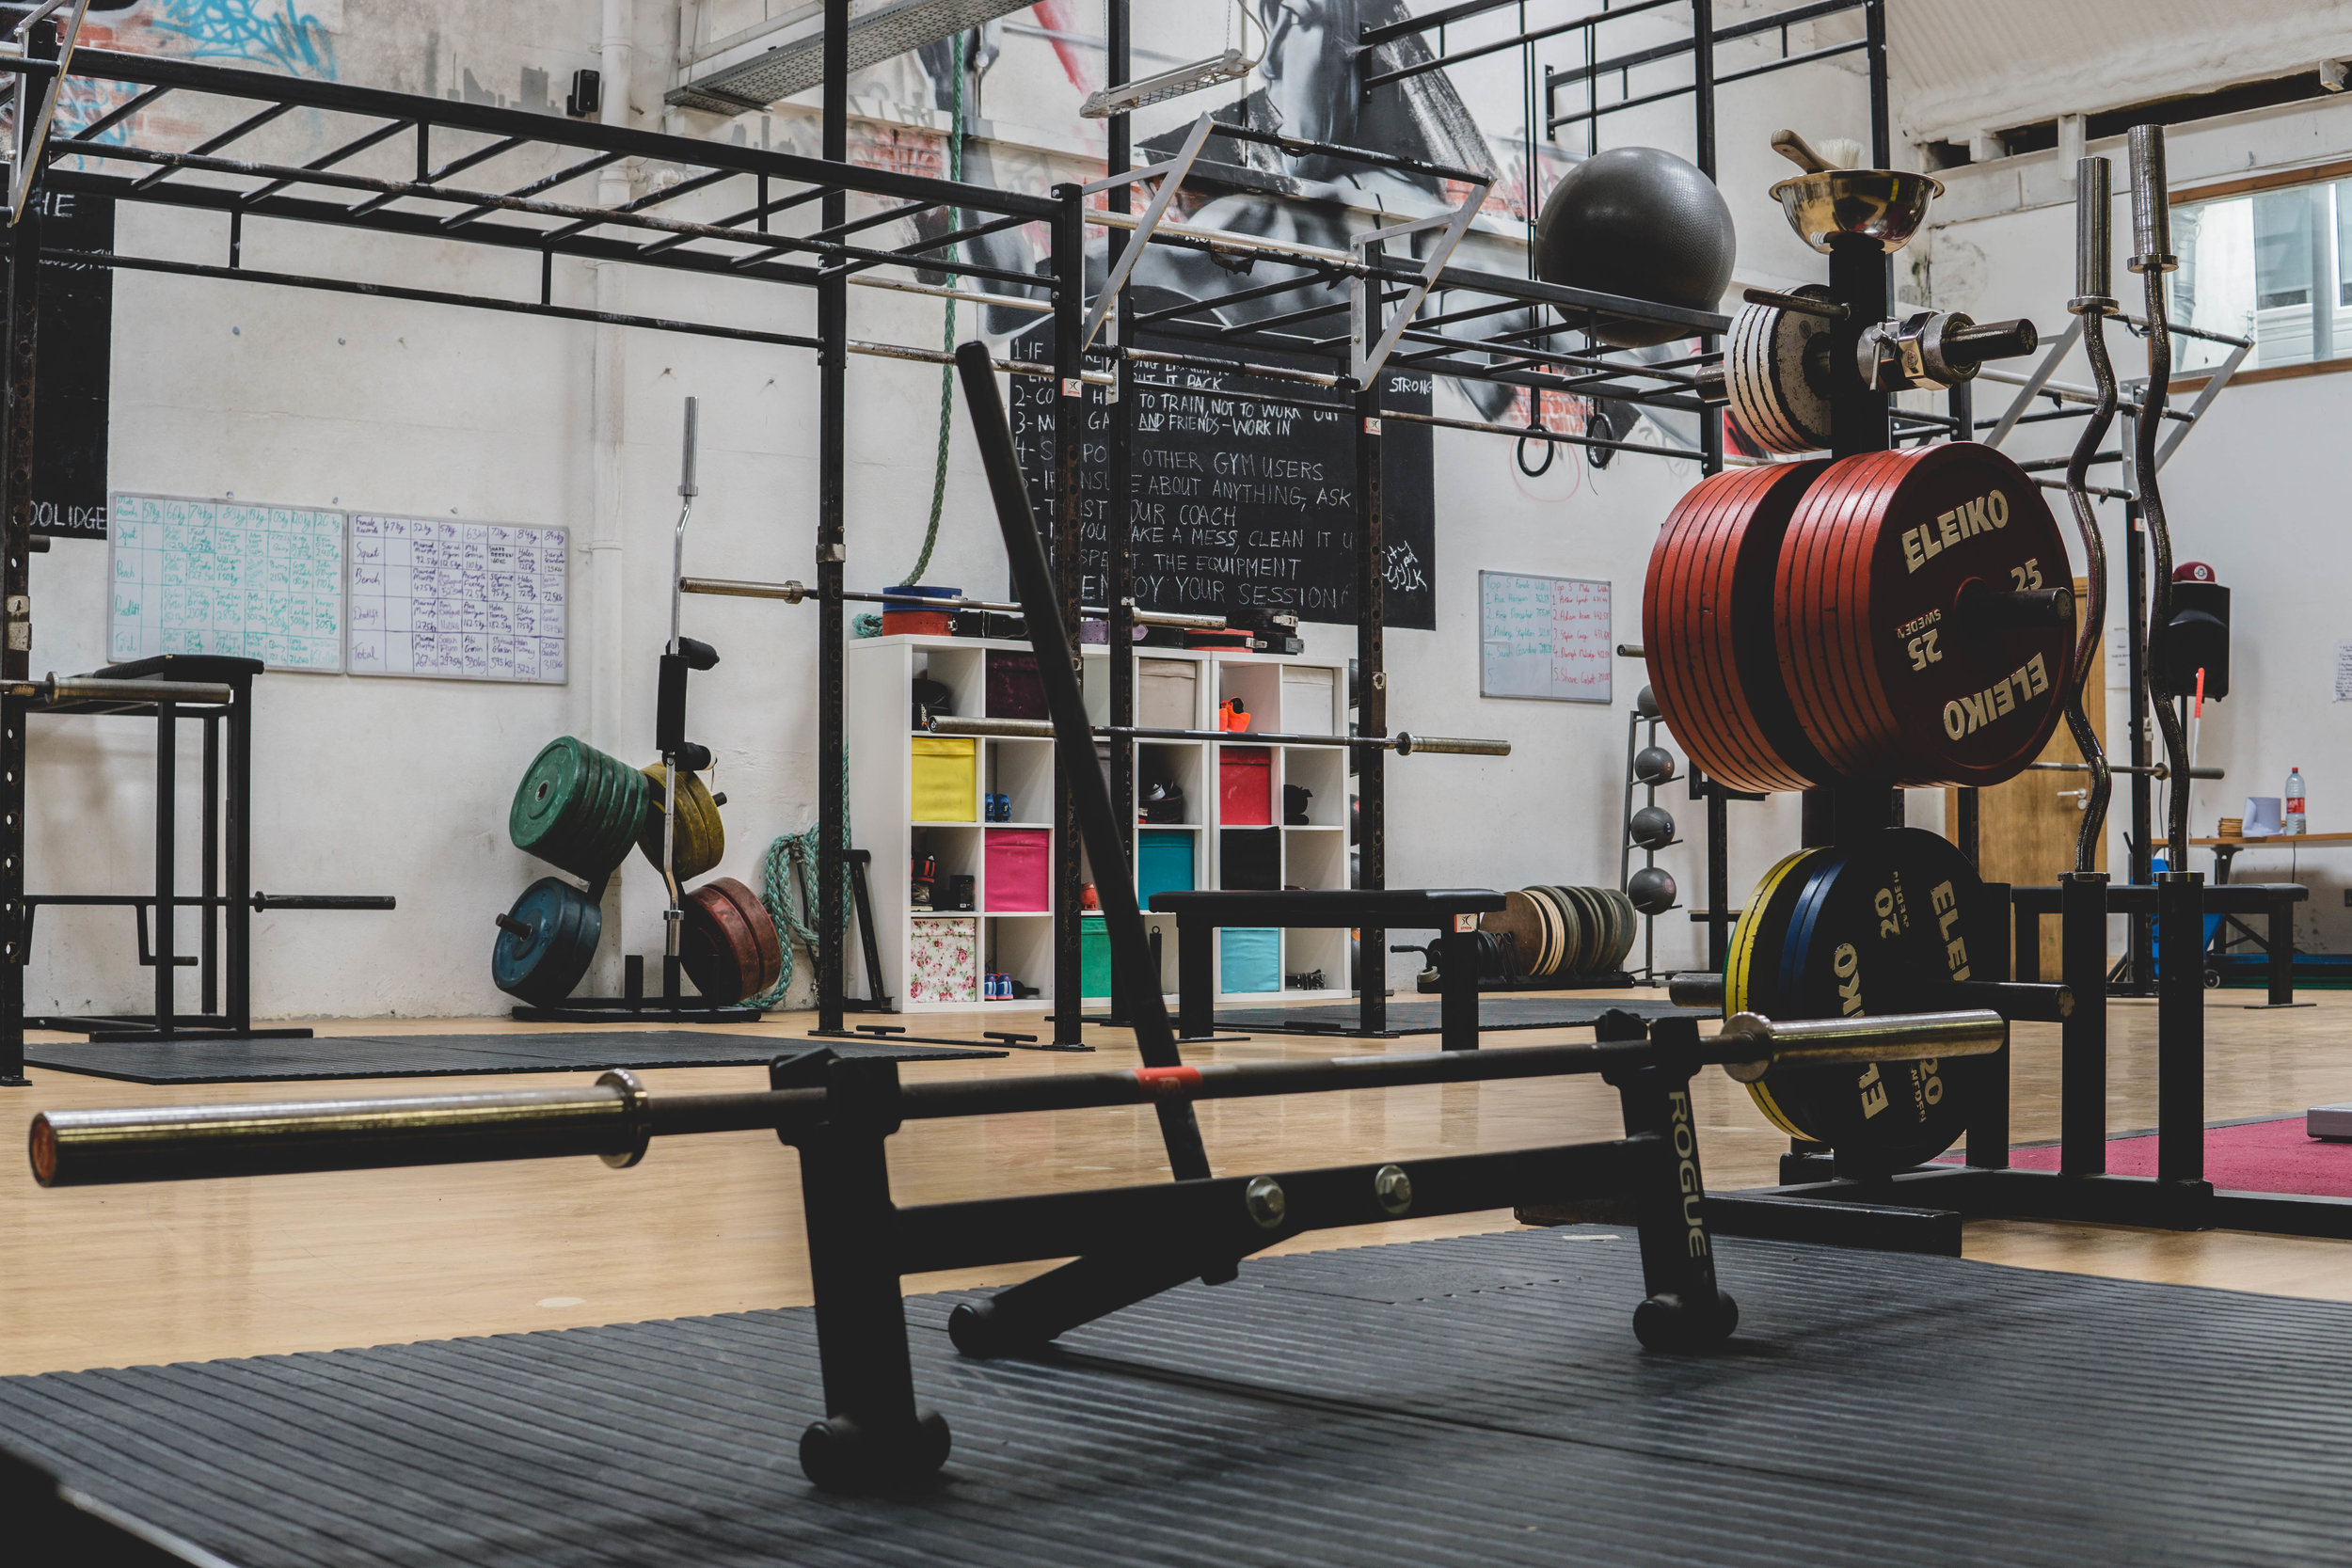 Open Gym - Train by yourself in an awesome environment of lifters unlike any other